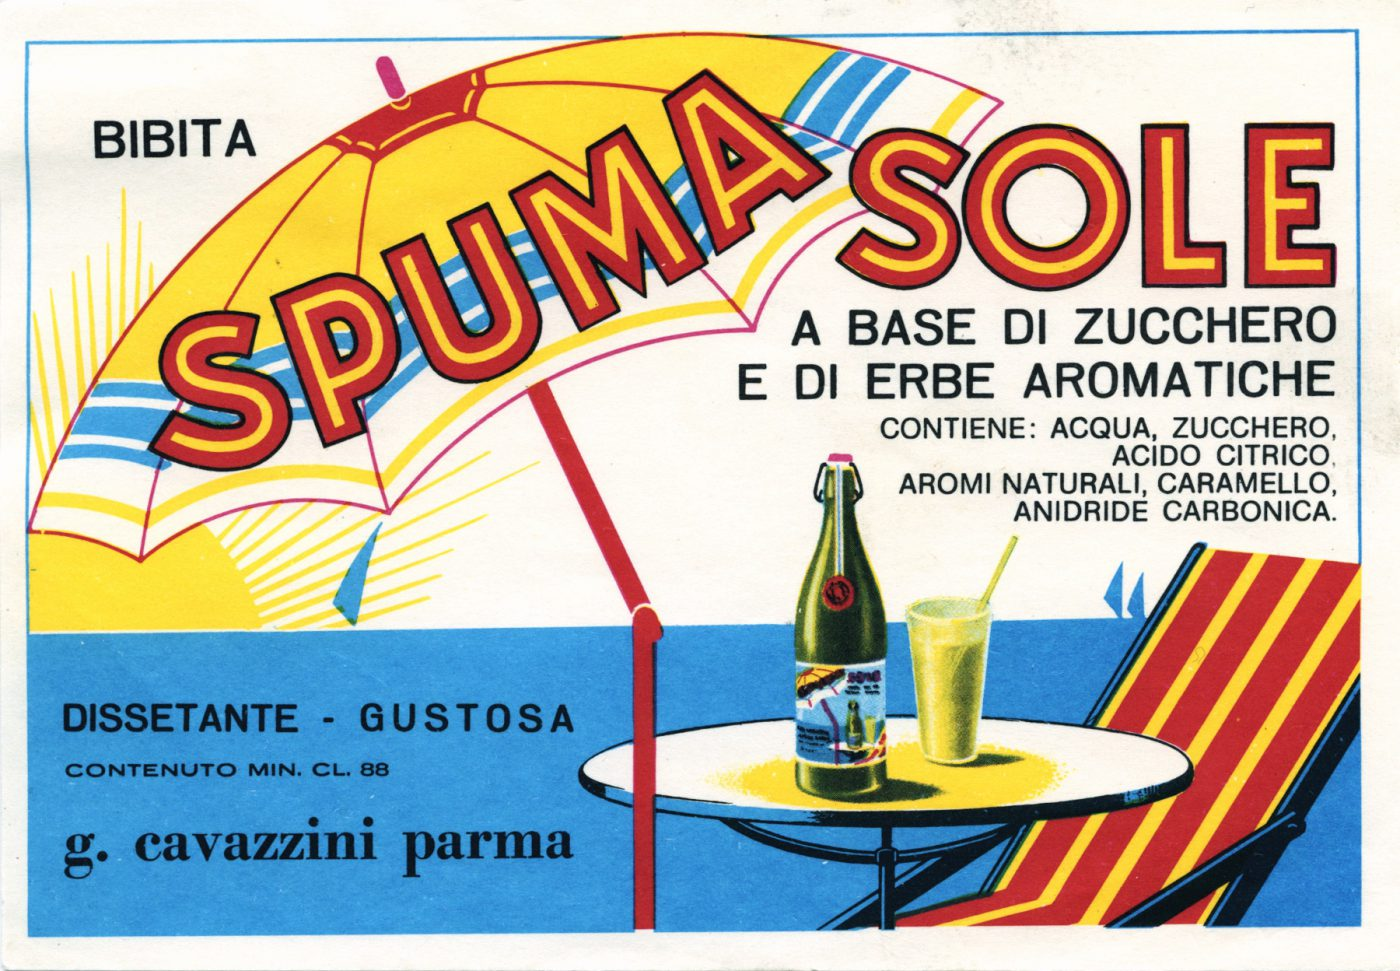 Spuma Here the real flavors of the Made in Italy (which we don't like to admit) must be tried to understand a nation.